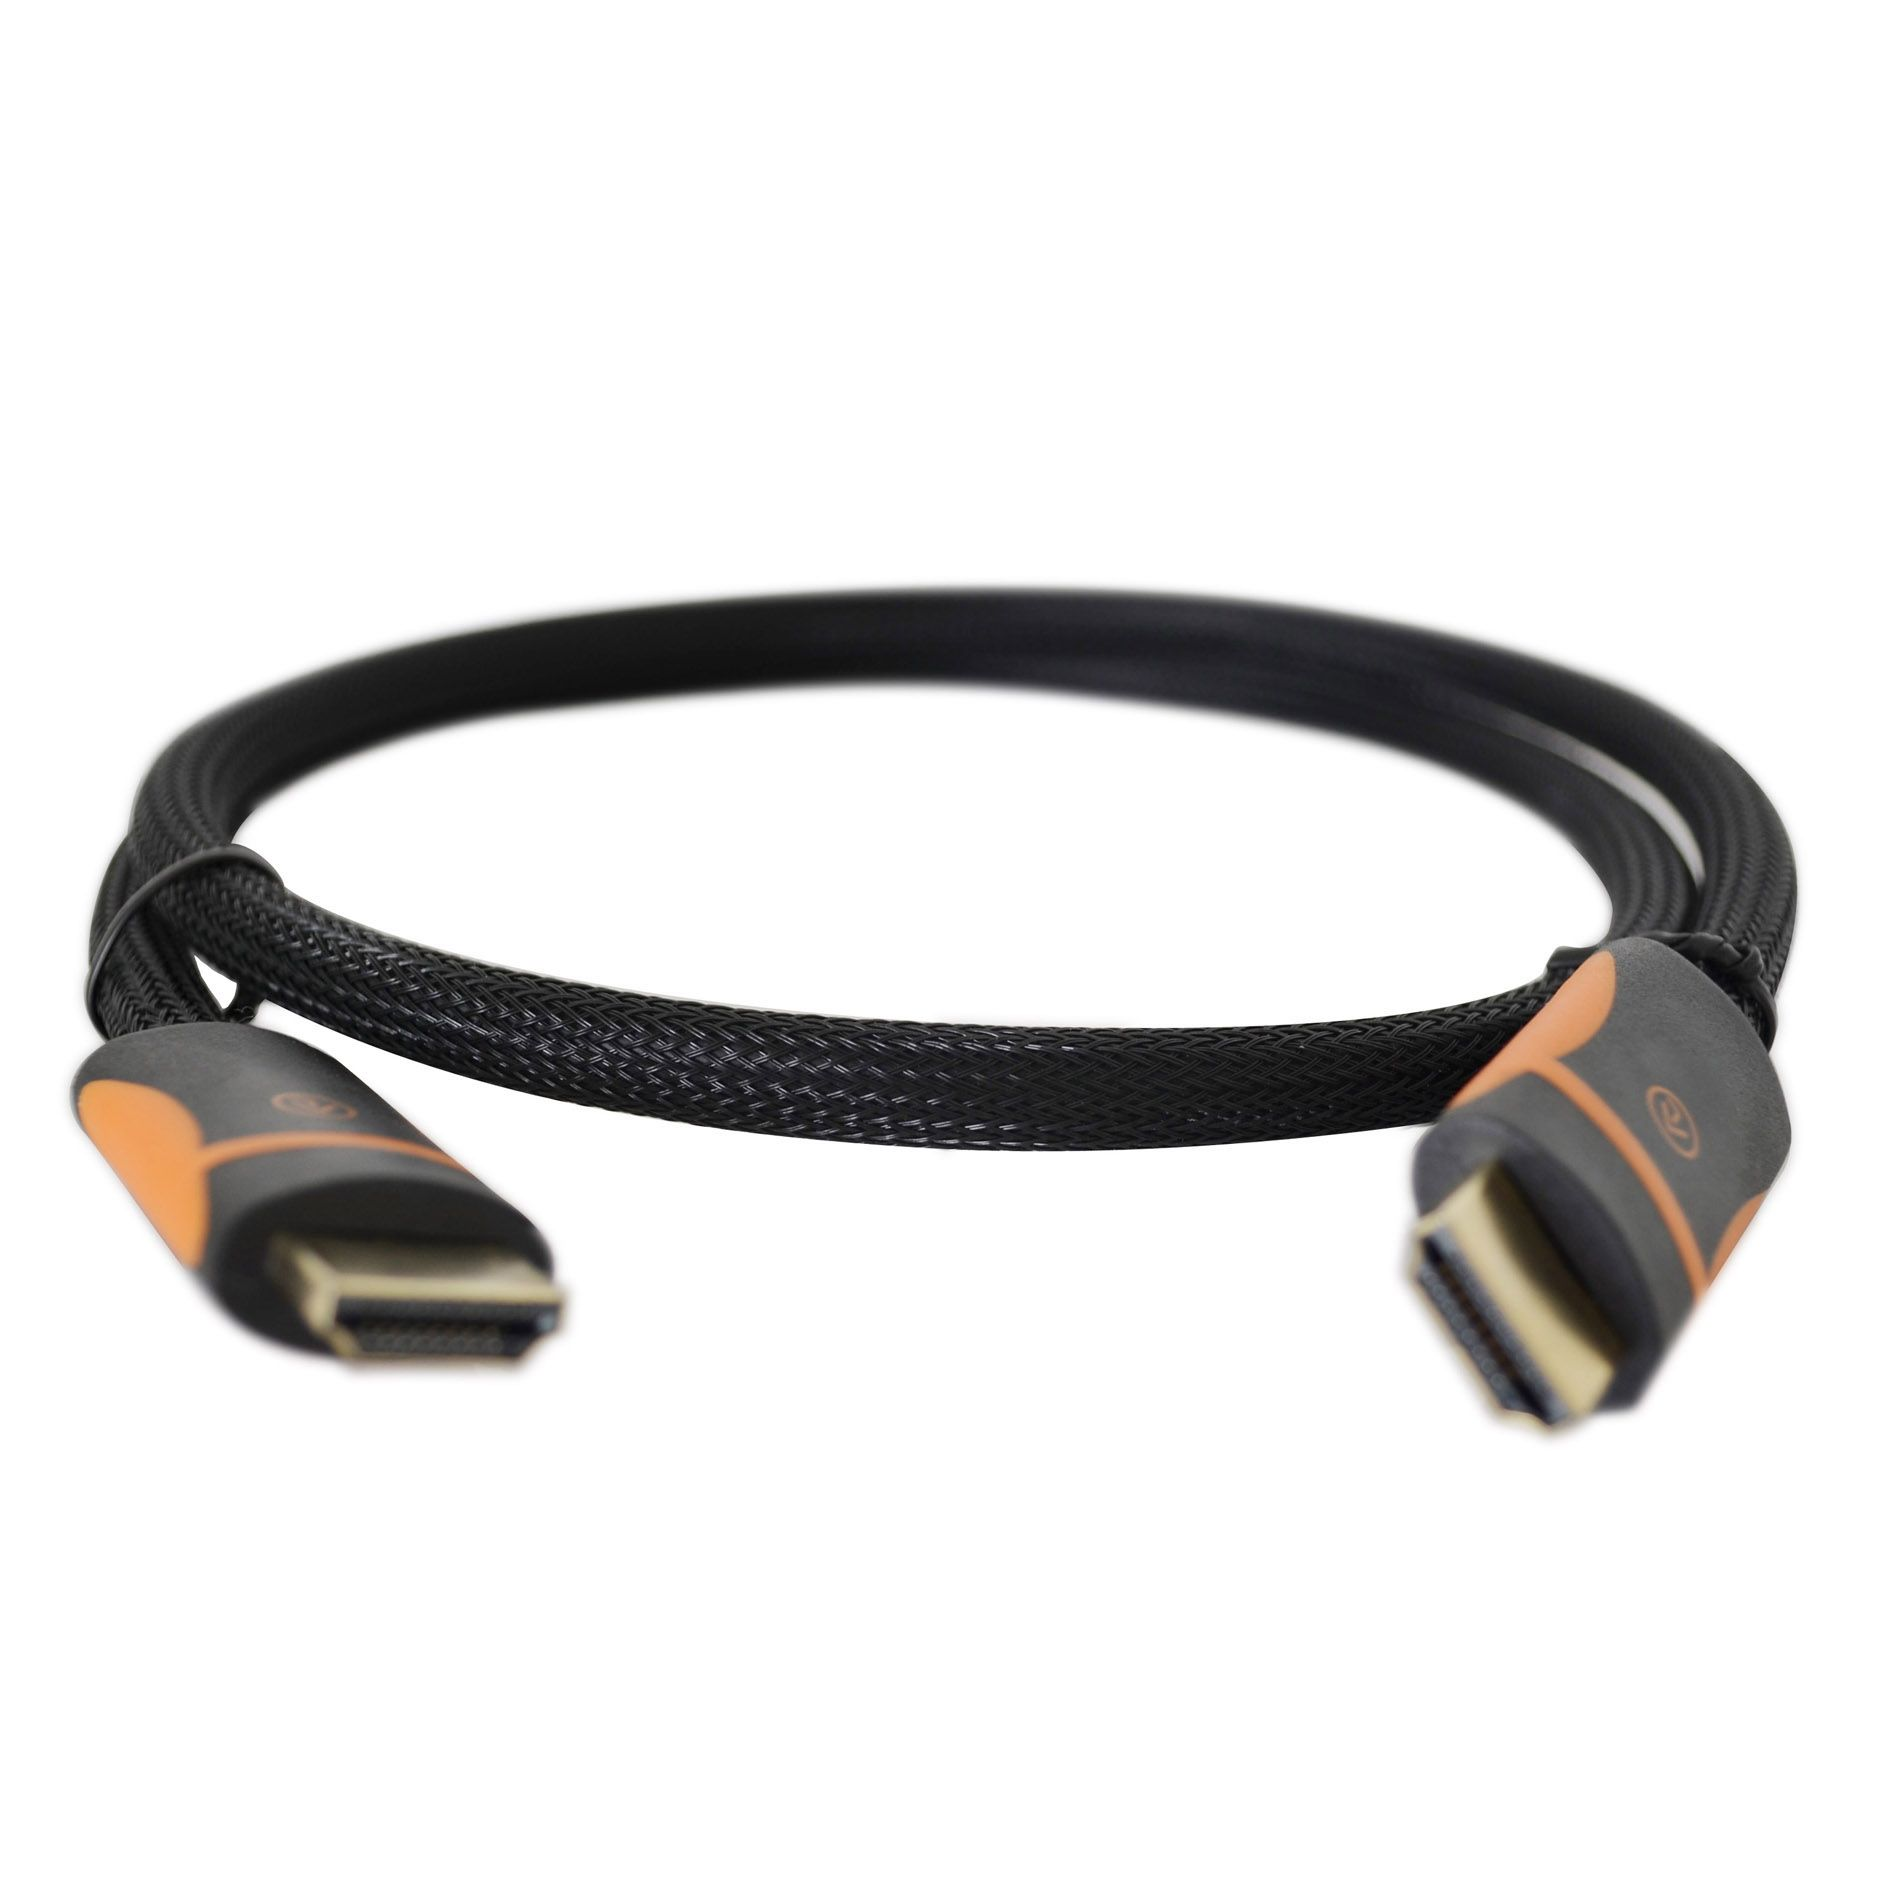 Alphaline™ 6' HDMI Cable